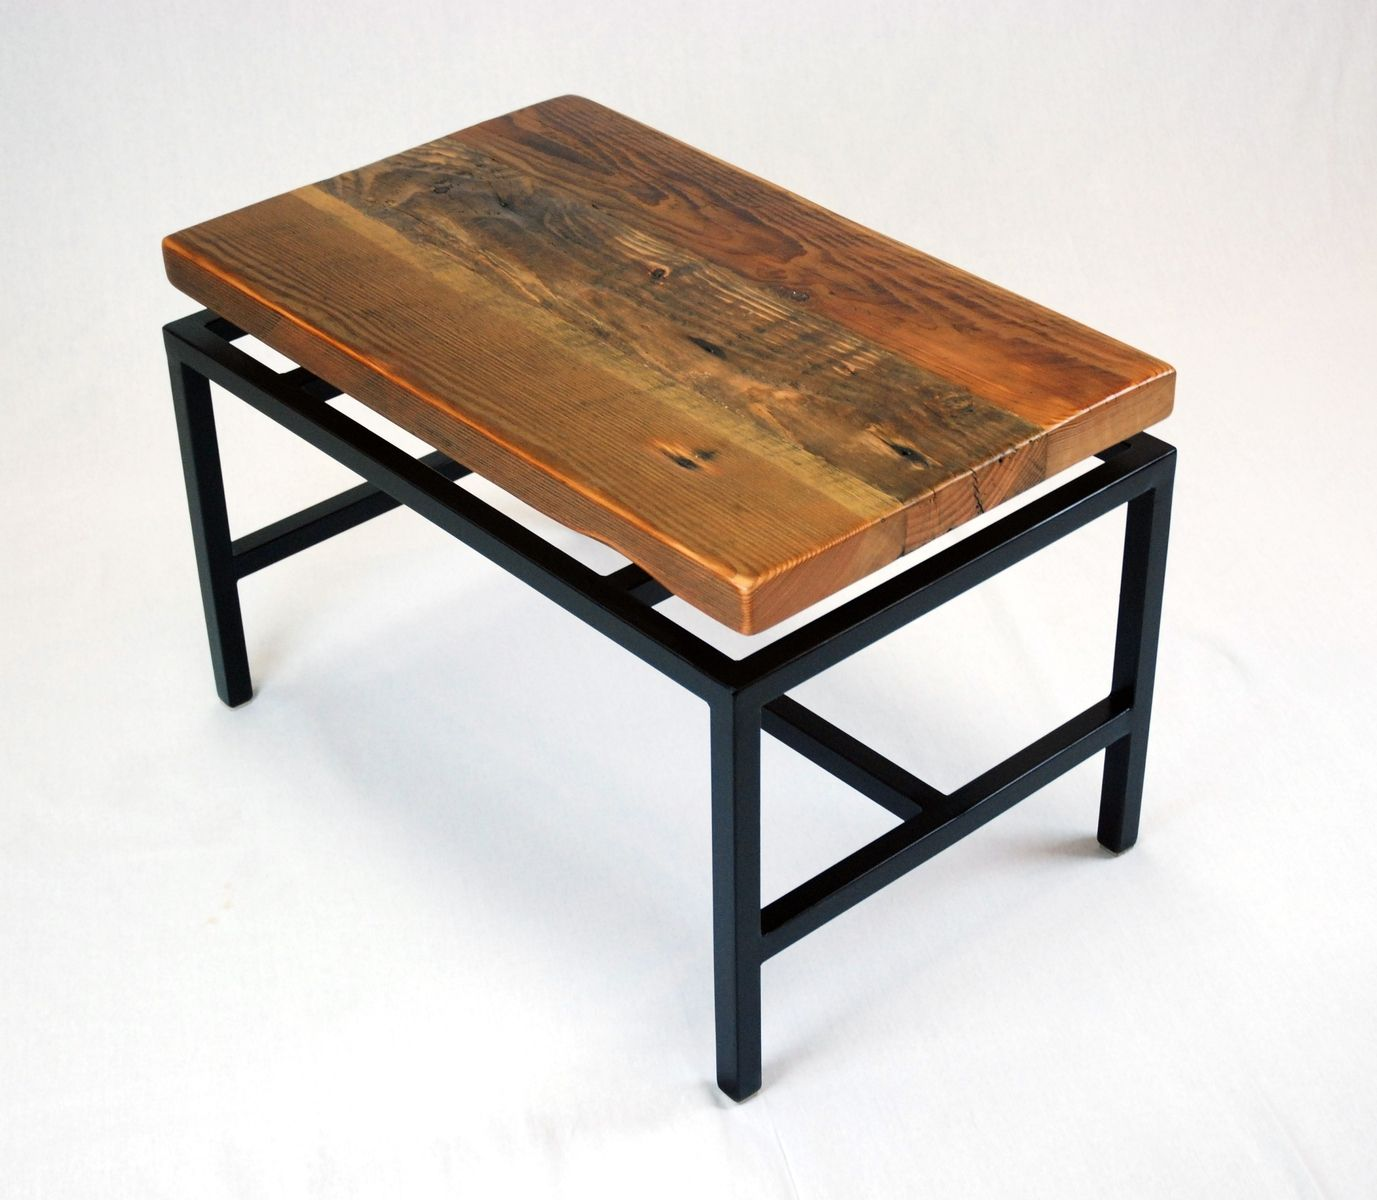 handmade floating top industrial coffee table in reclaimed fir by jonathan january. Black Bedroom Furniture Sets. Home Design Ideas